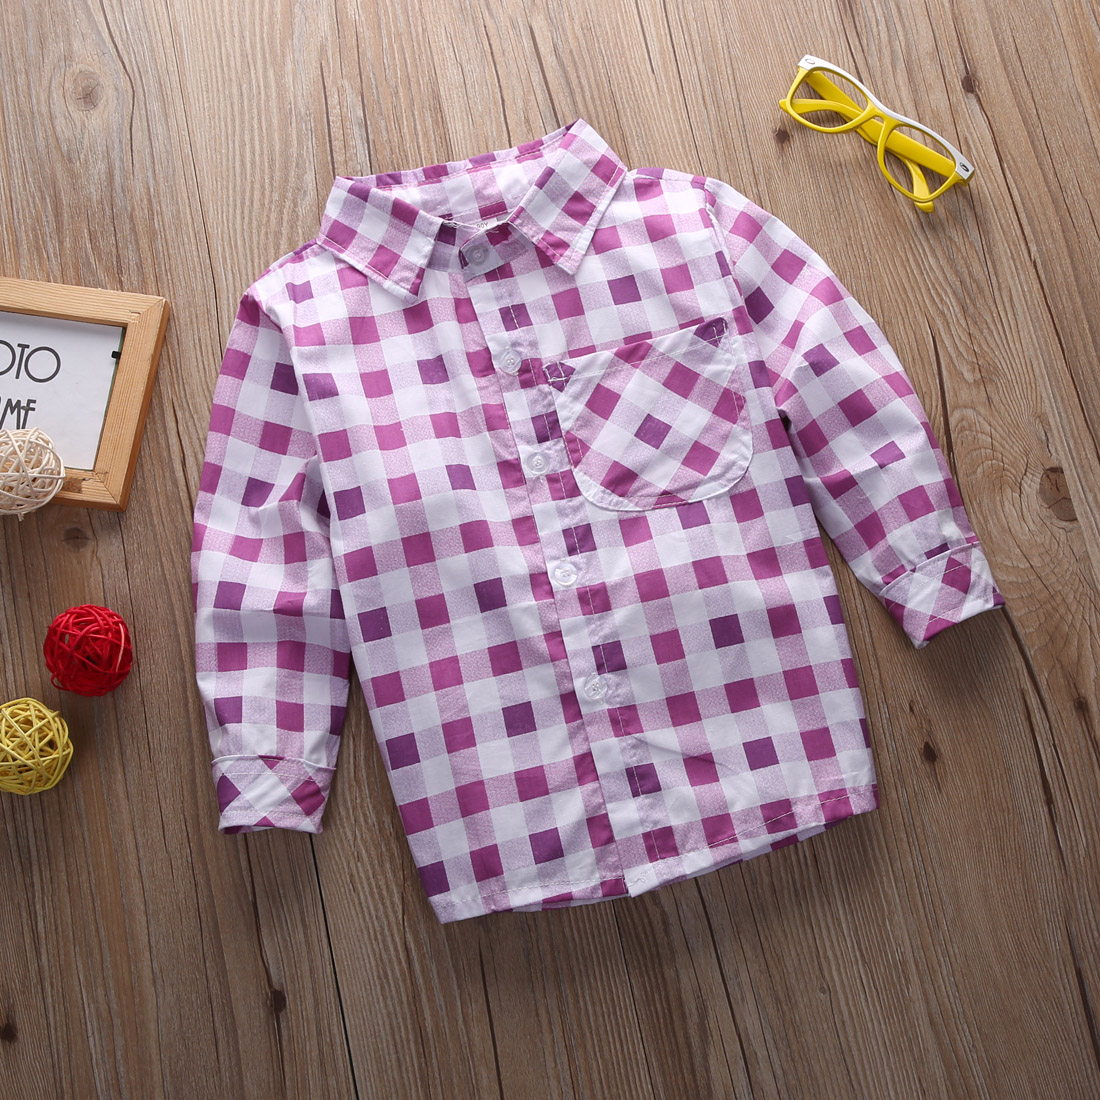 cb969ed5 2015 Girls Checked Shirts Baby Kids Tops Plaid Long Sleeve Blouse Girls  Clothing 2 7Y-in Blouses & Shirts from Mother & Kids on Aliexpress.com |  Alibaba ...